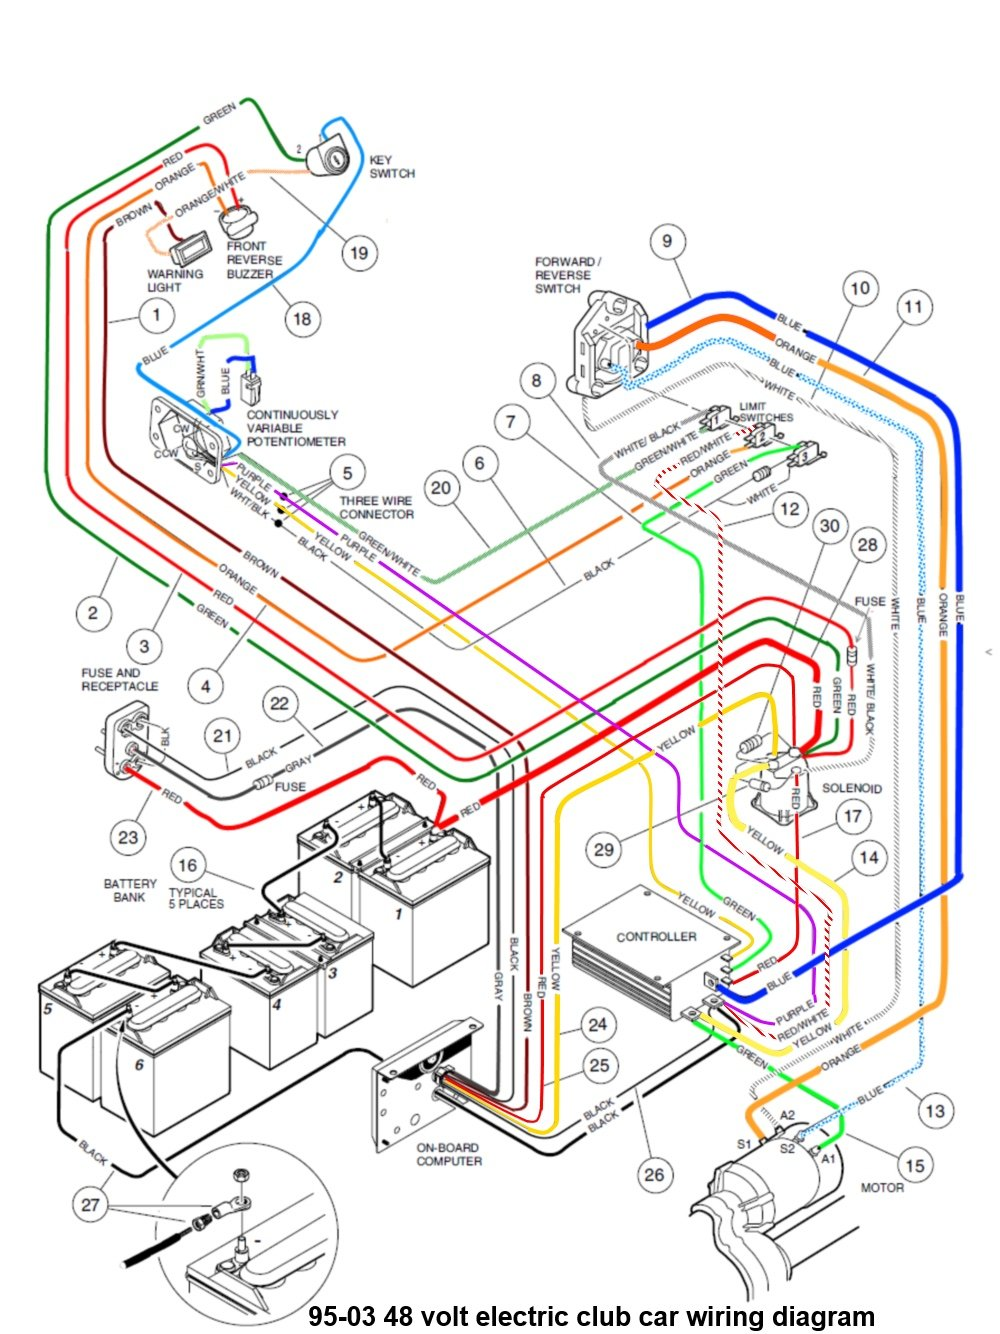 wiring diagram on a 2002 club car golf cart club car top speed doesn t seem right page 2 wiring diagram for 1996 gas club car golf cart